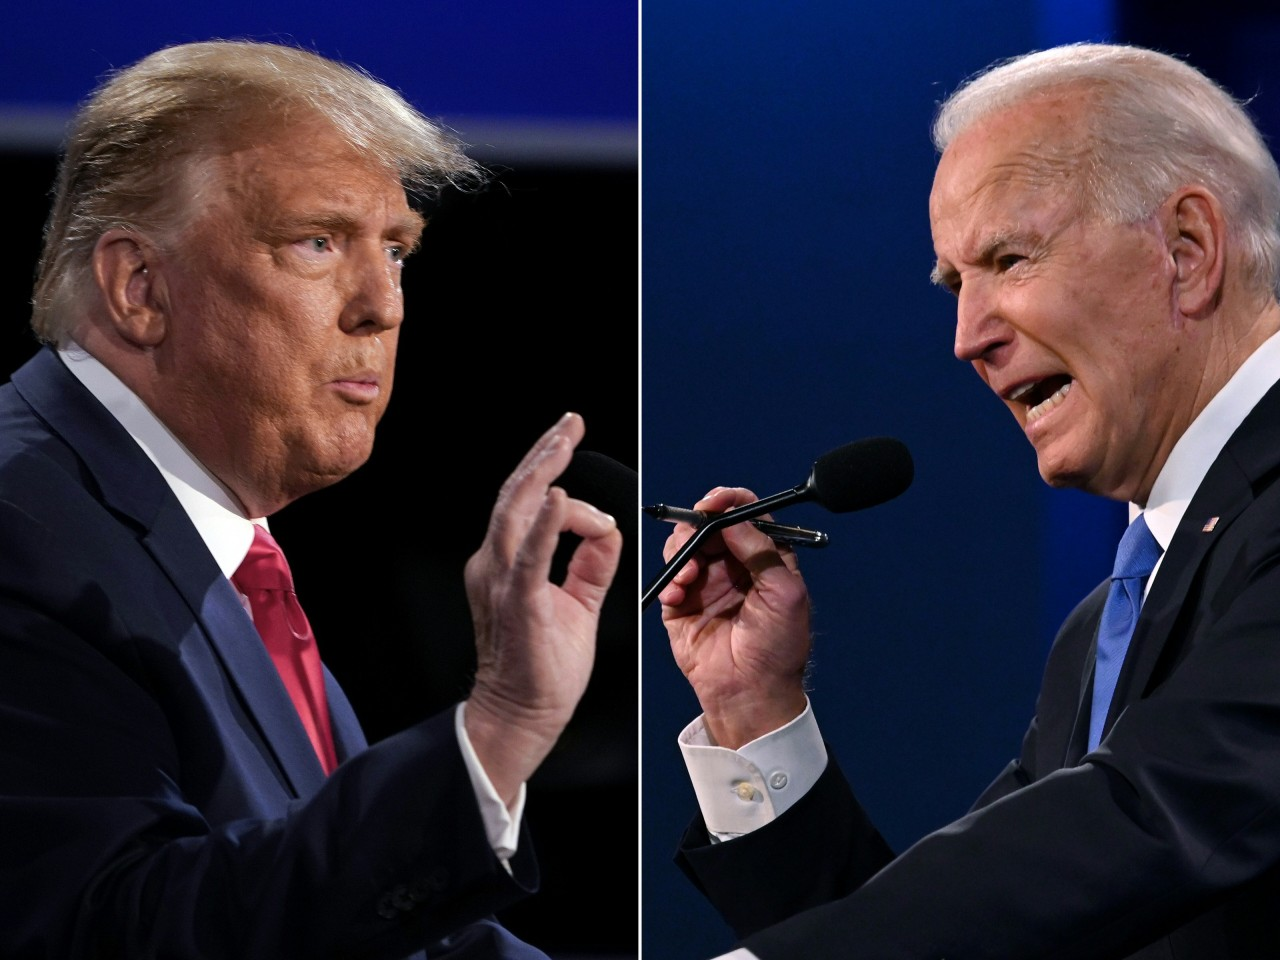 US President Donald Trump and former Vice President Joe Biden speak at the presidential debate on Oct. 22. (AFP-Yonhap)